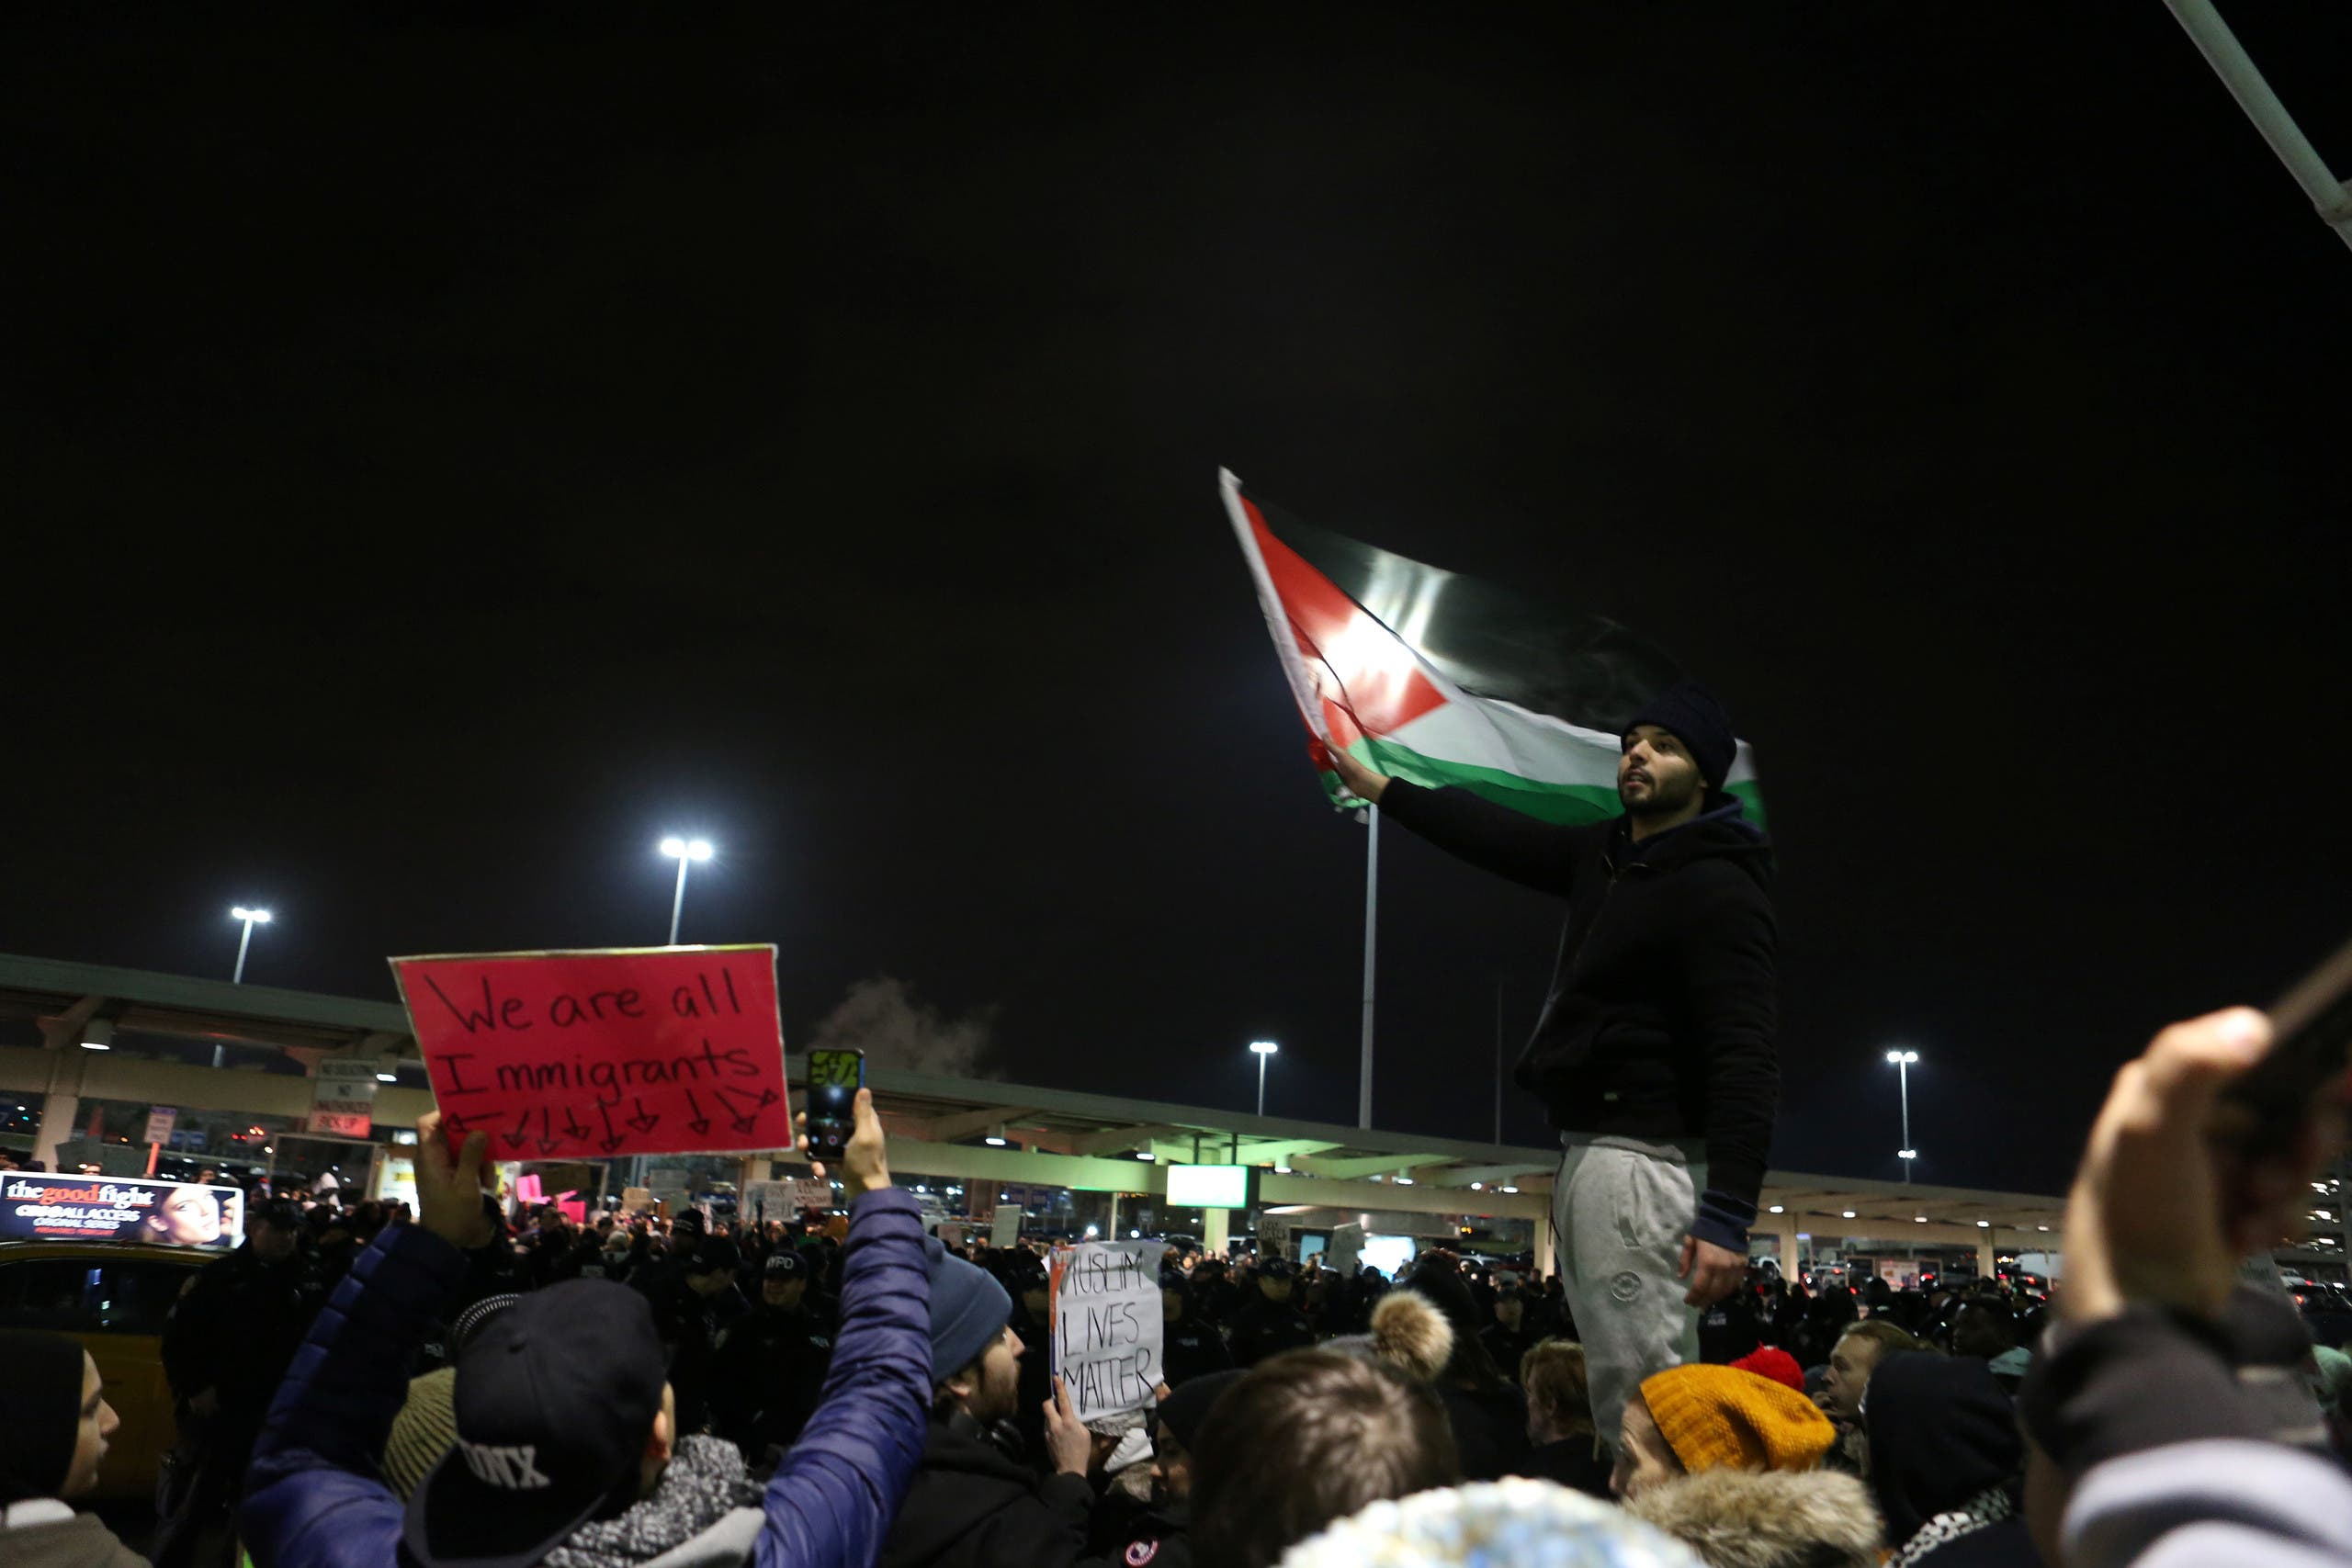 A protester waves a Palestinian flag in opposition to U.S. President Donald Trump's ban on immigration and travel outside Terminal 4 at JFK airport in Queens, New York City, New York, U.S. January 28, 2017. REUTERS/Joe Penney